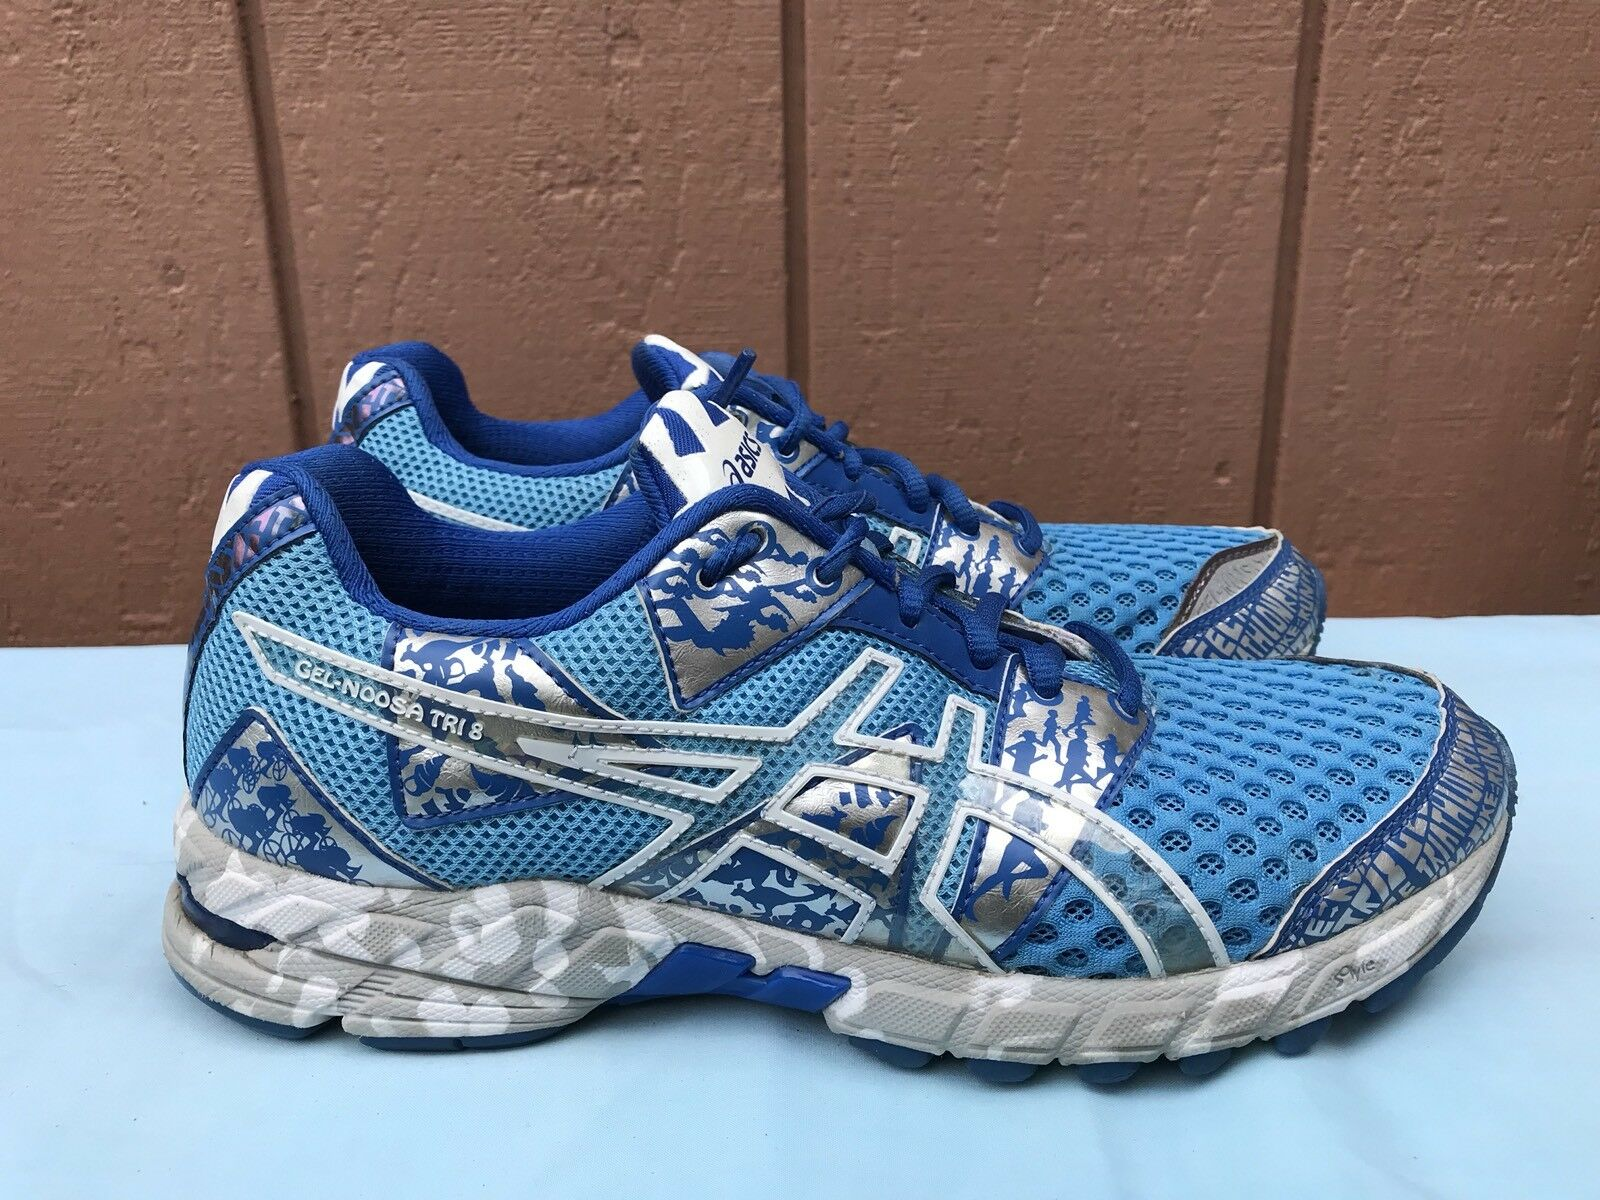 EUC ASICS Gel Noosa Tri 8 T356Q T356Q T356Q Athletic Running shoes Womens Size US 8 bluee A5 ed2061